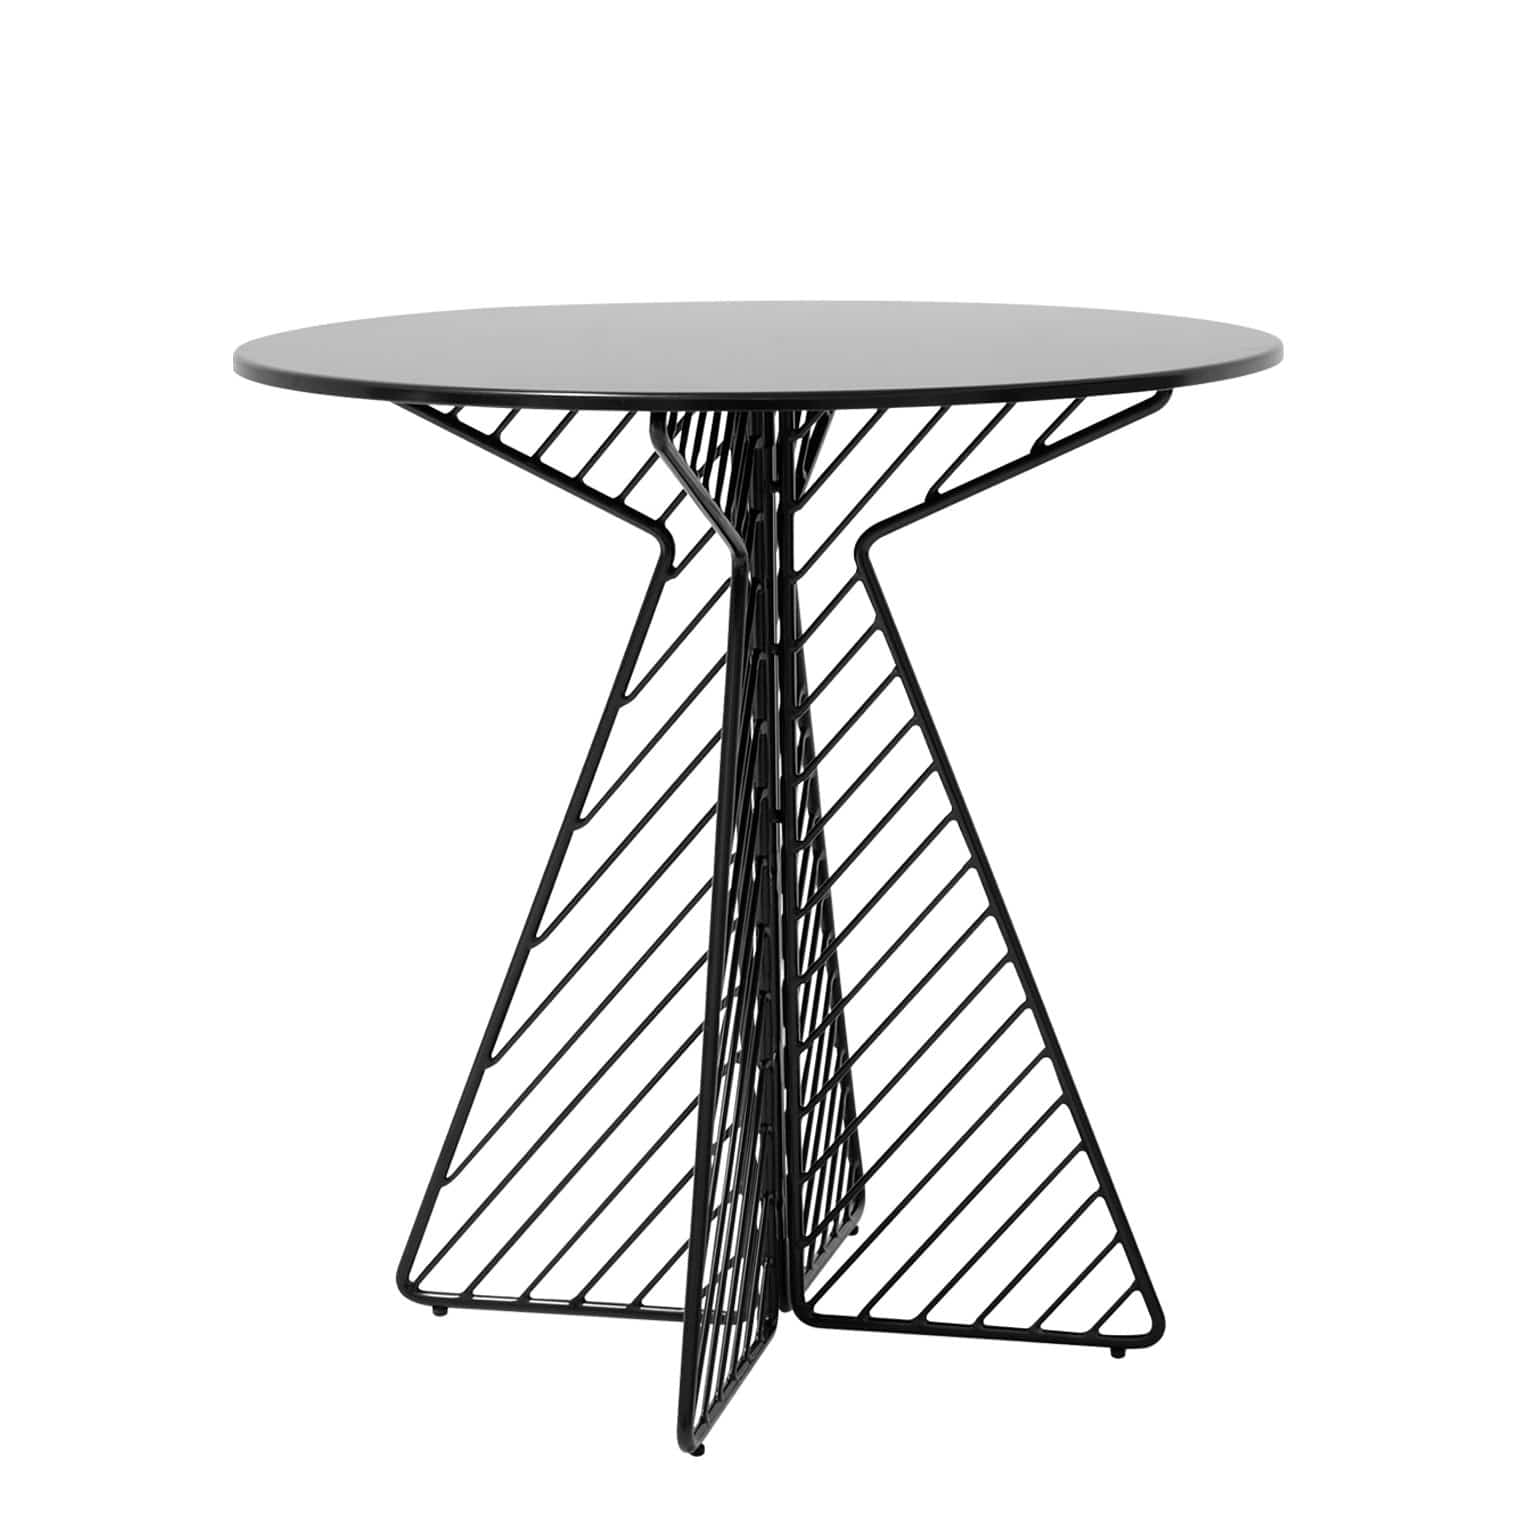 Bend Goods Furniture Black + Round Cafe Dining Table